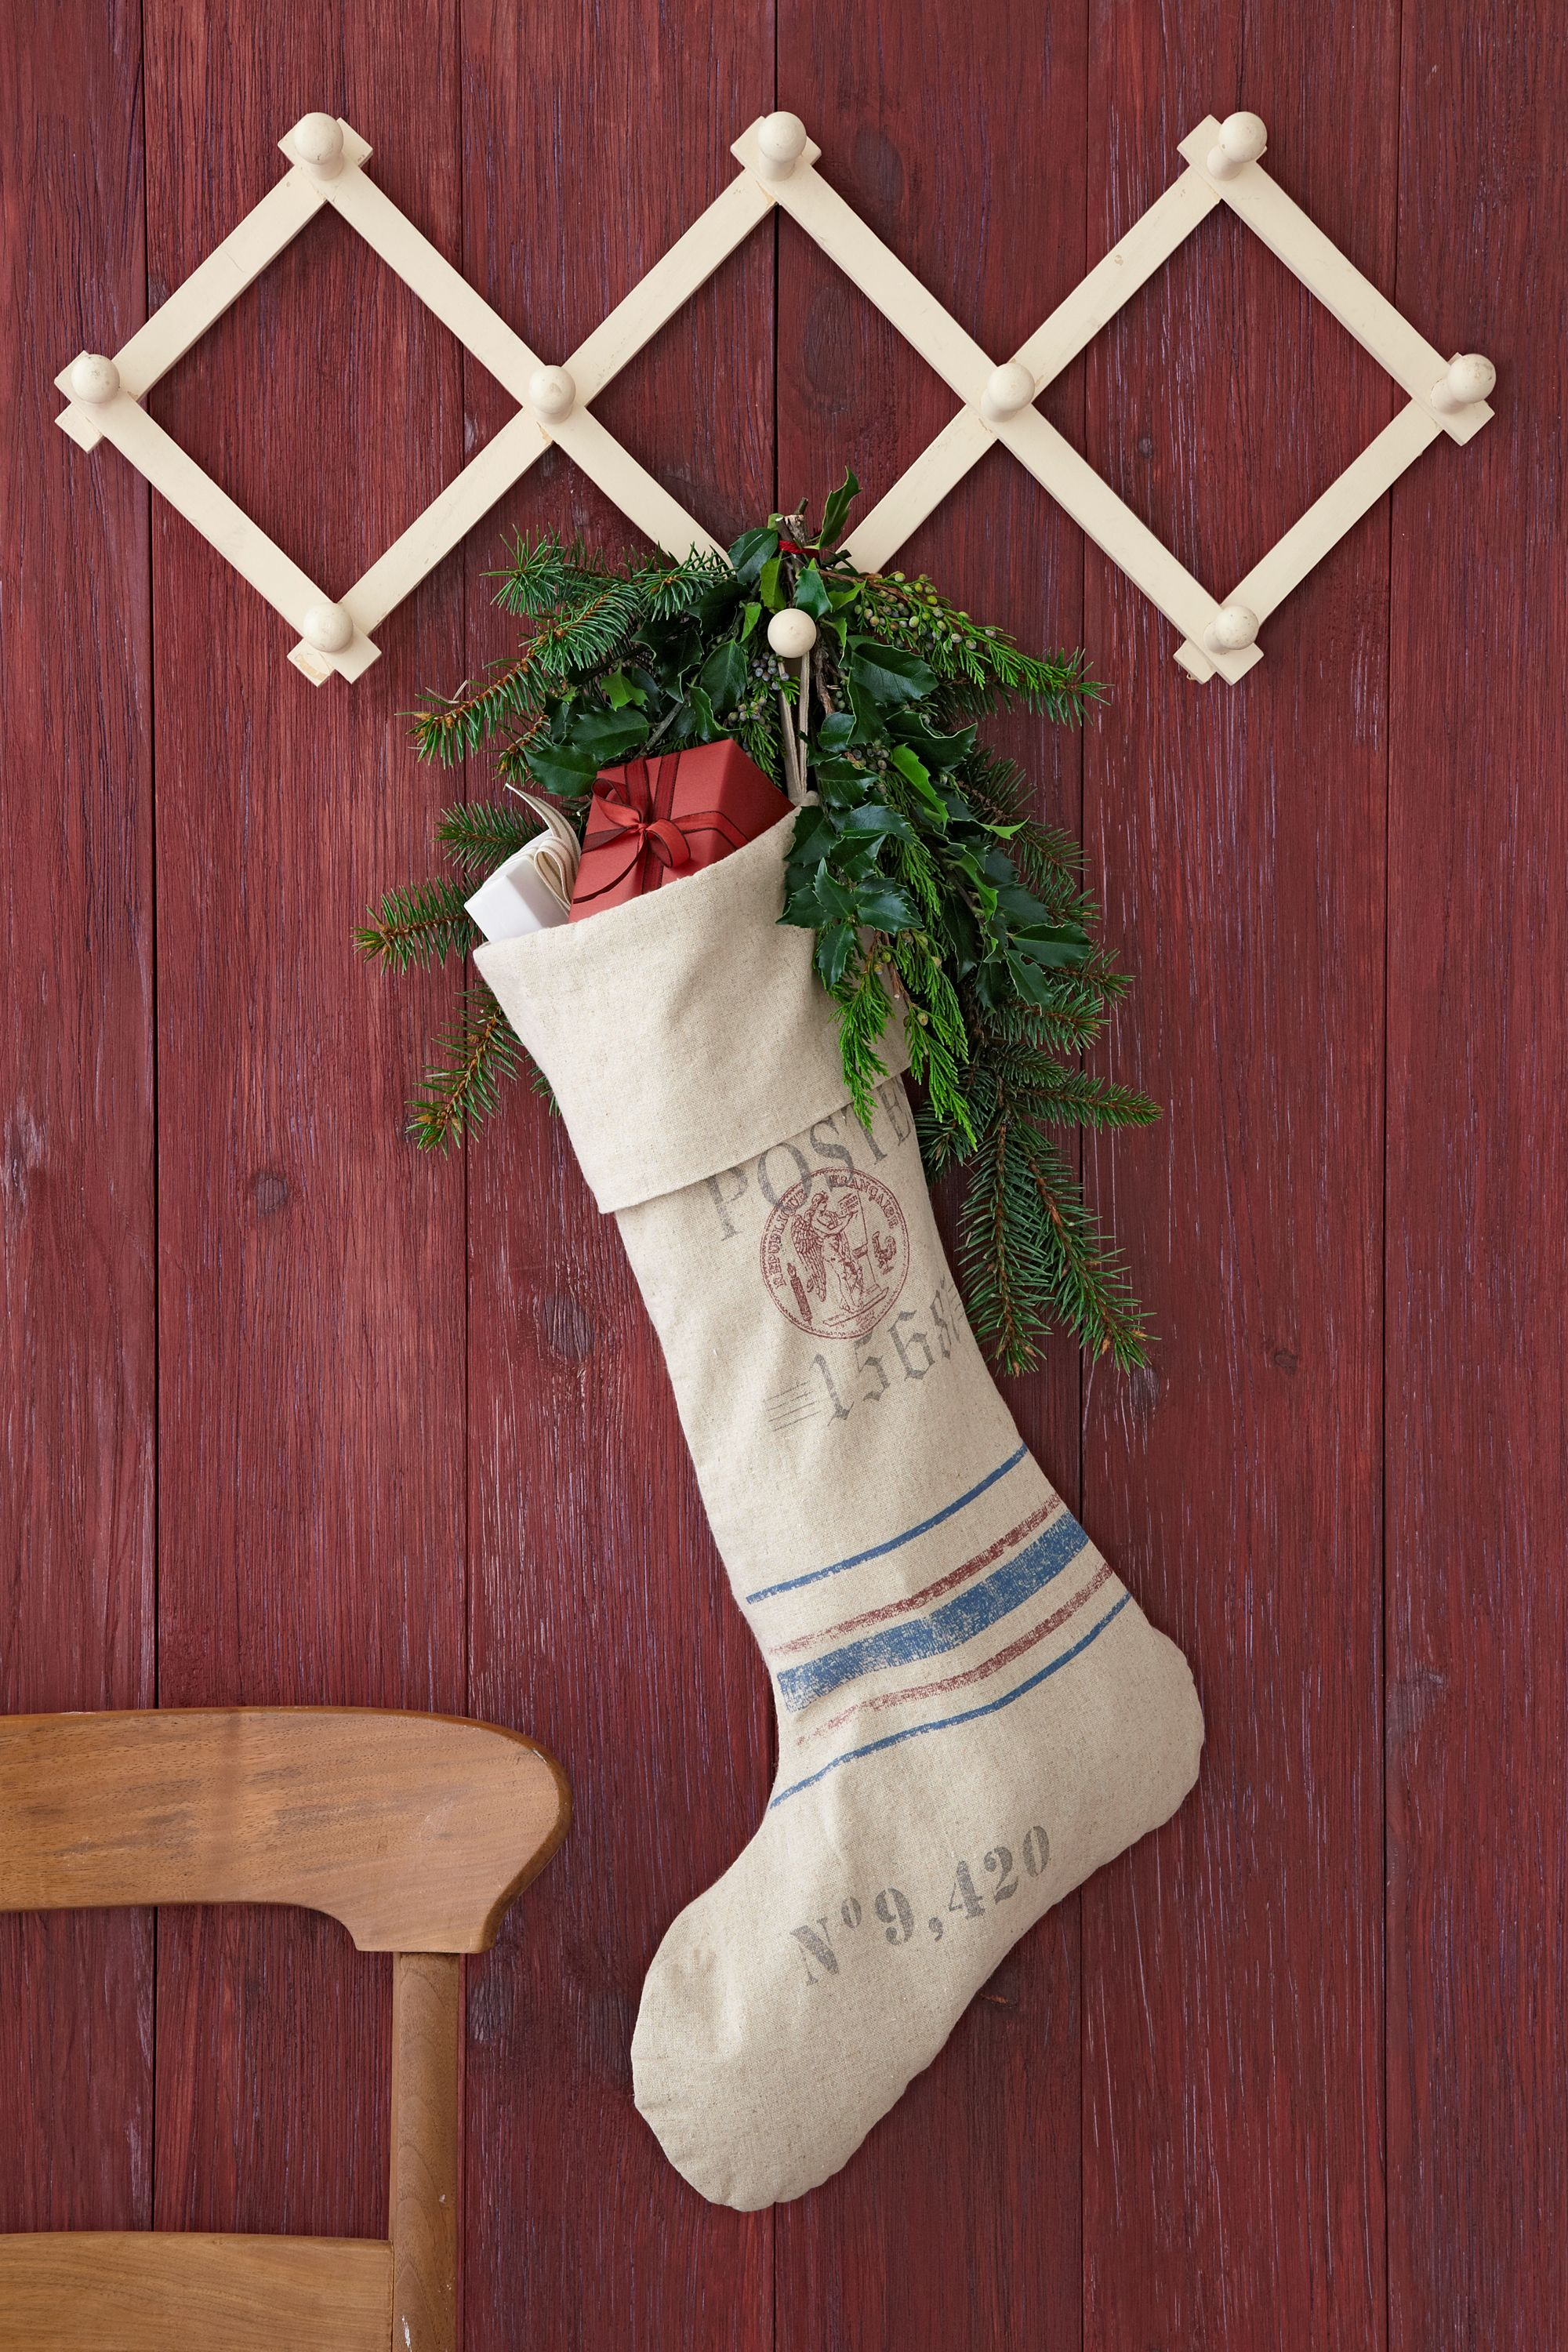 40 Best Personalized Christmas Stockings - Unique Christmas Stocking ...